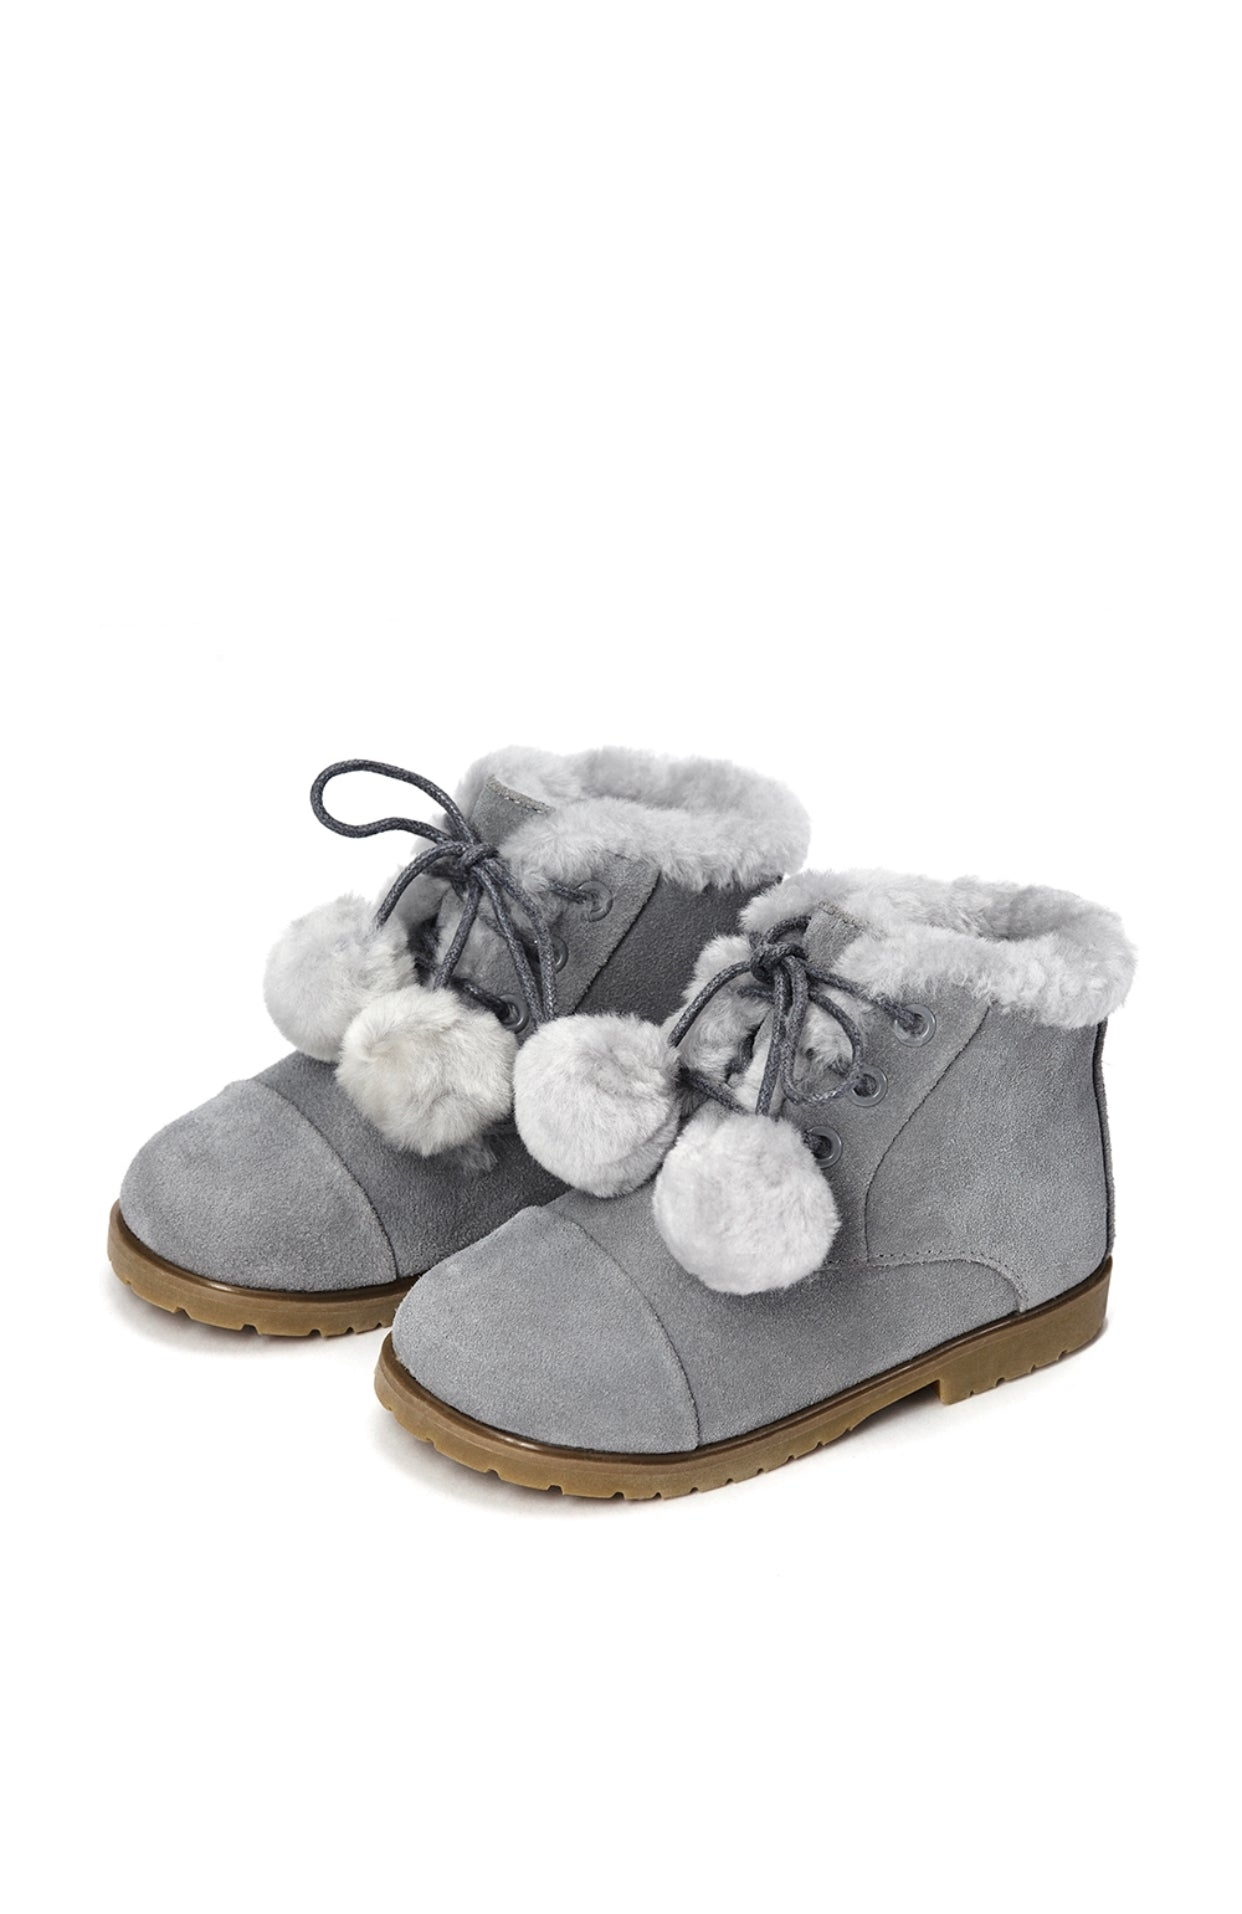 Age of Innocence Zoey pompom boots in Grey